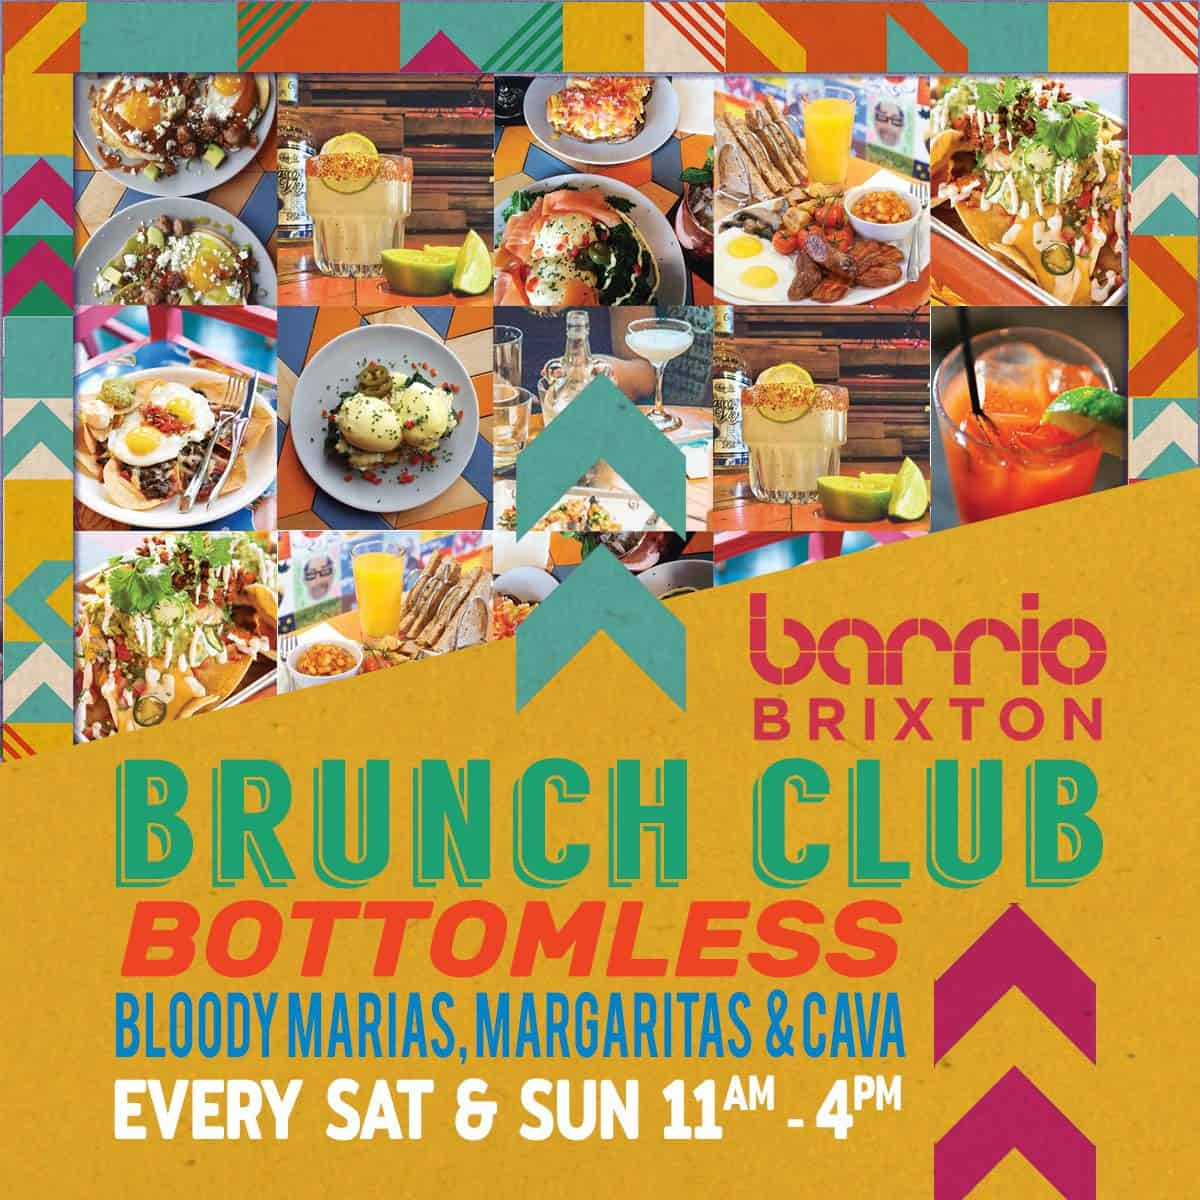 Brixton Bottomless Brunch